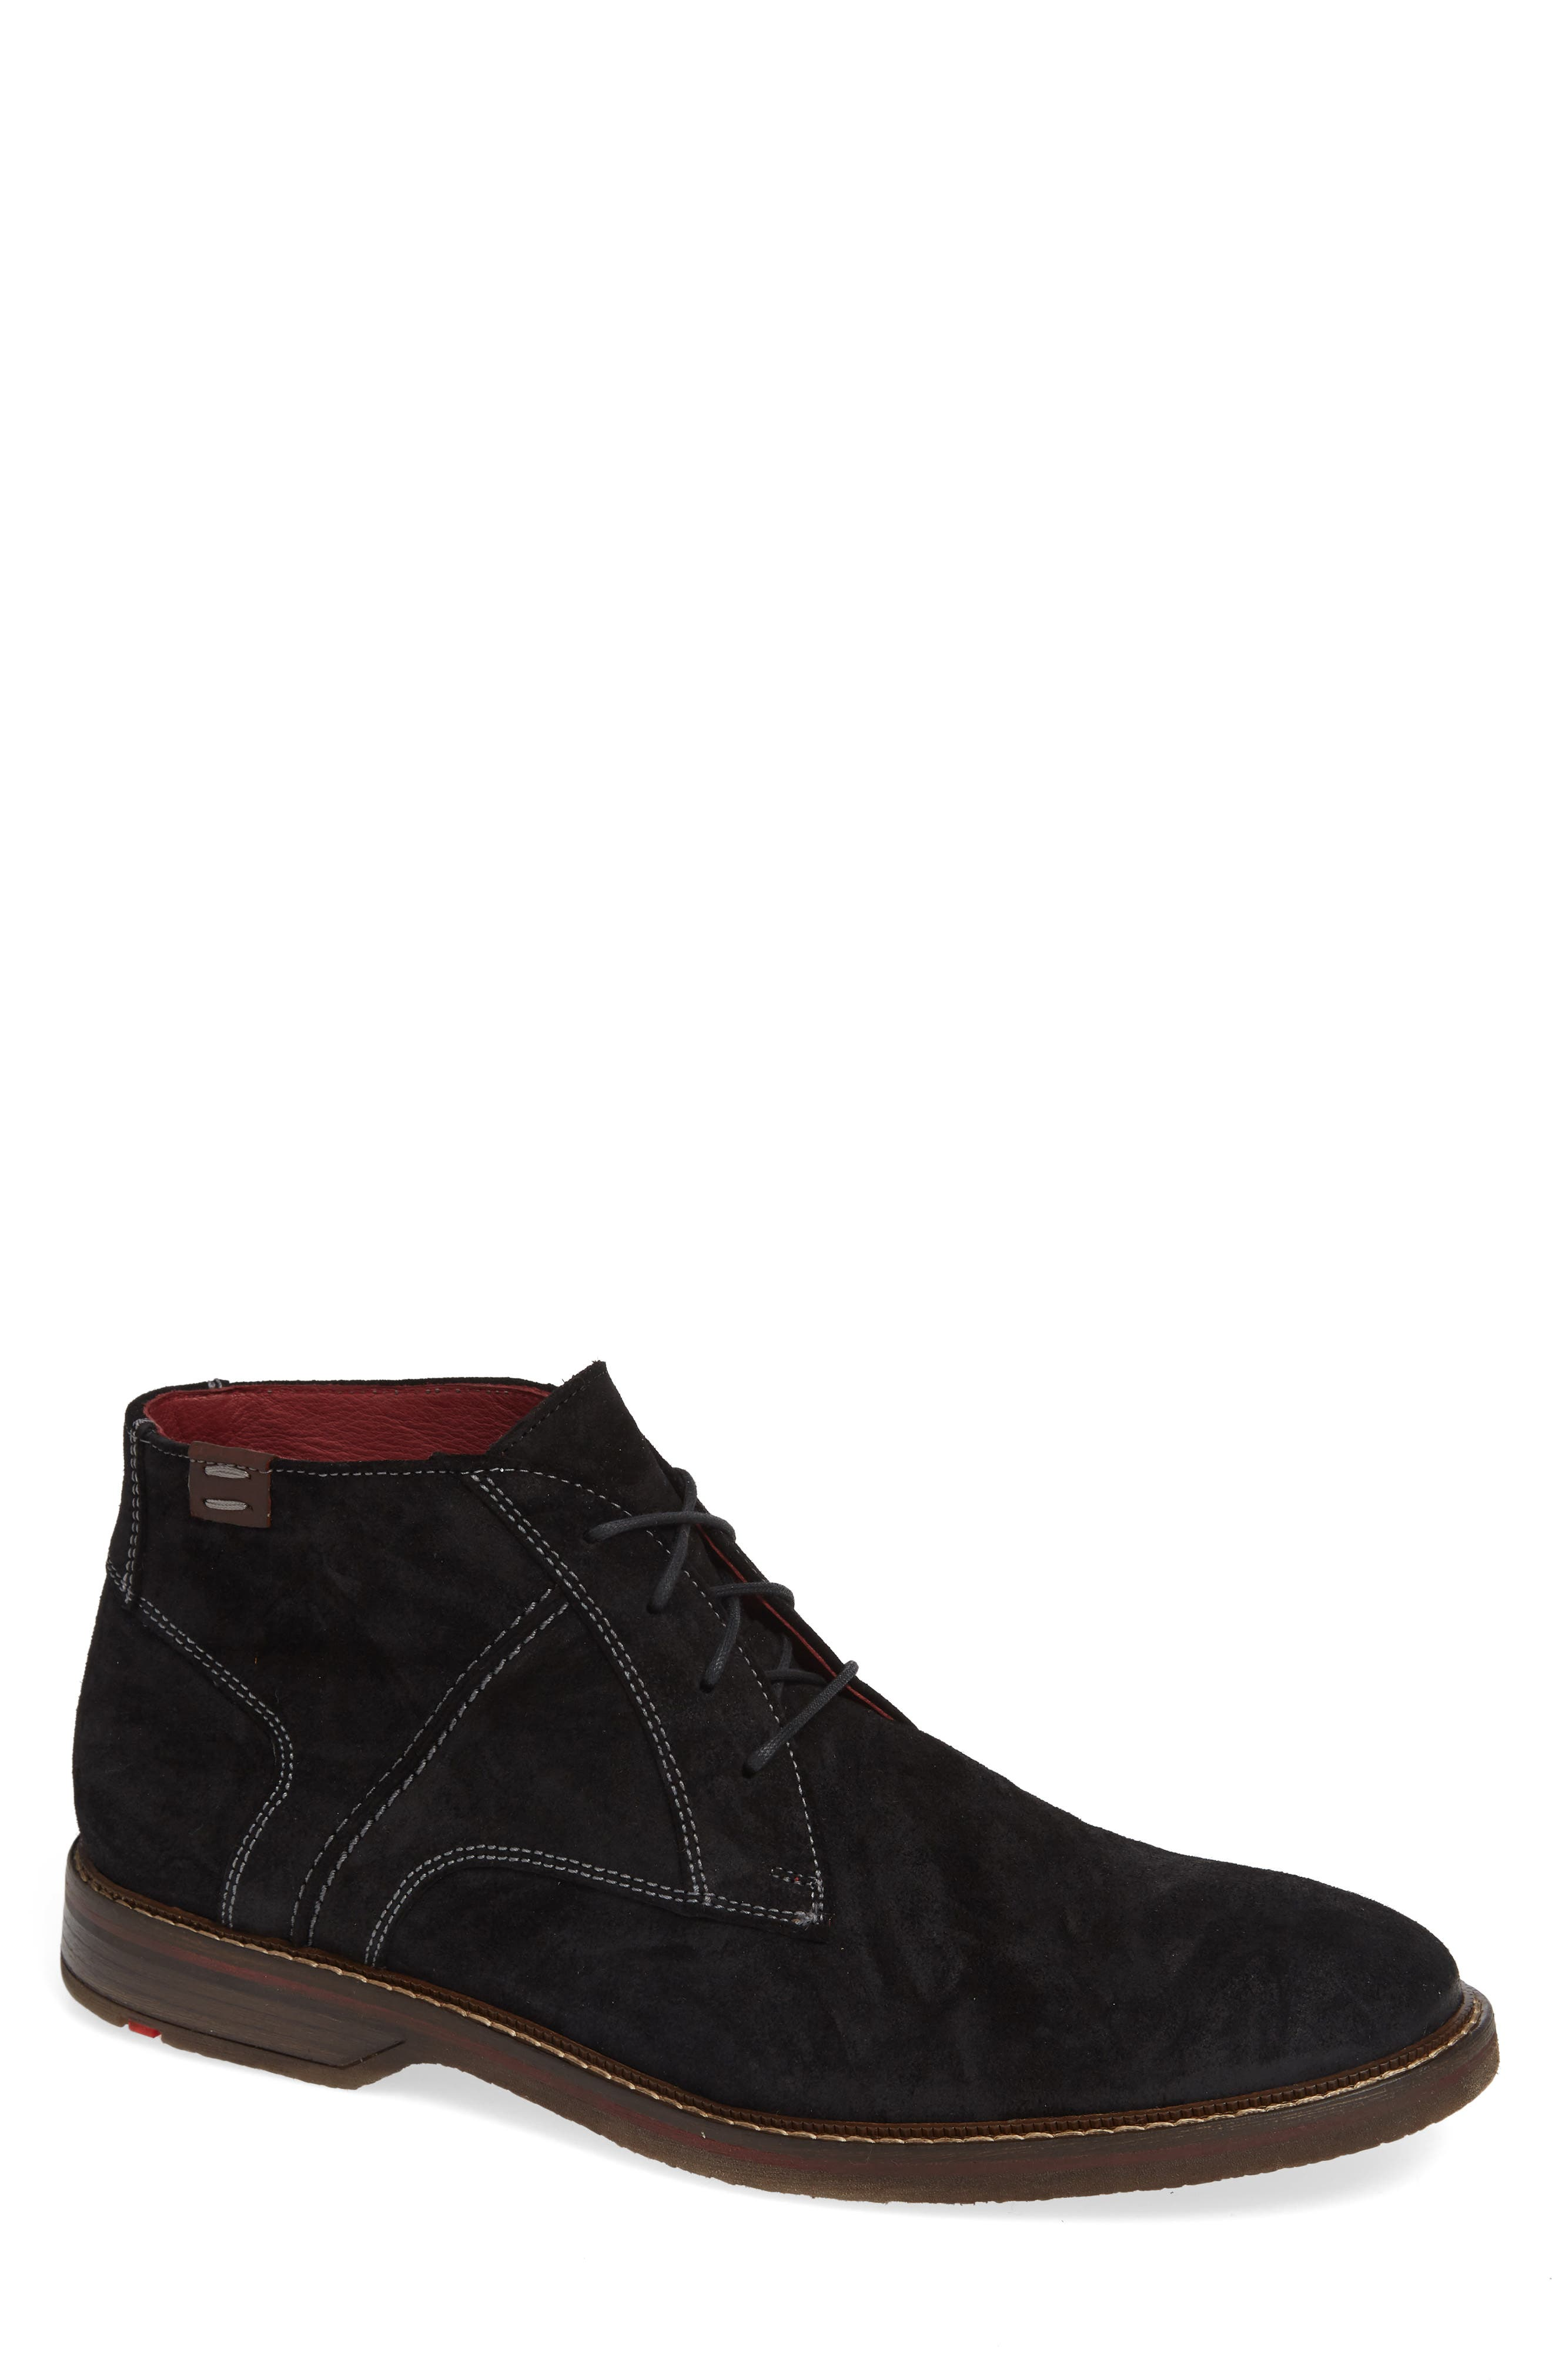 Dalbert Chukka Boot,                             Main thumbnail 1, color,                             BLACK/ KENIA SUEDE